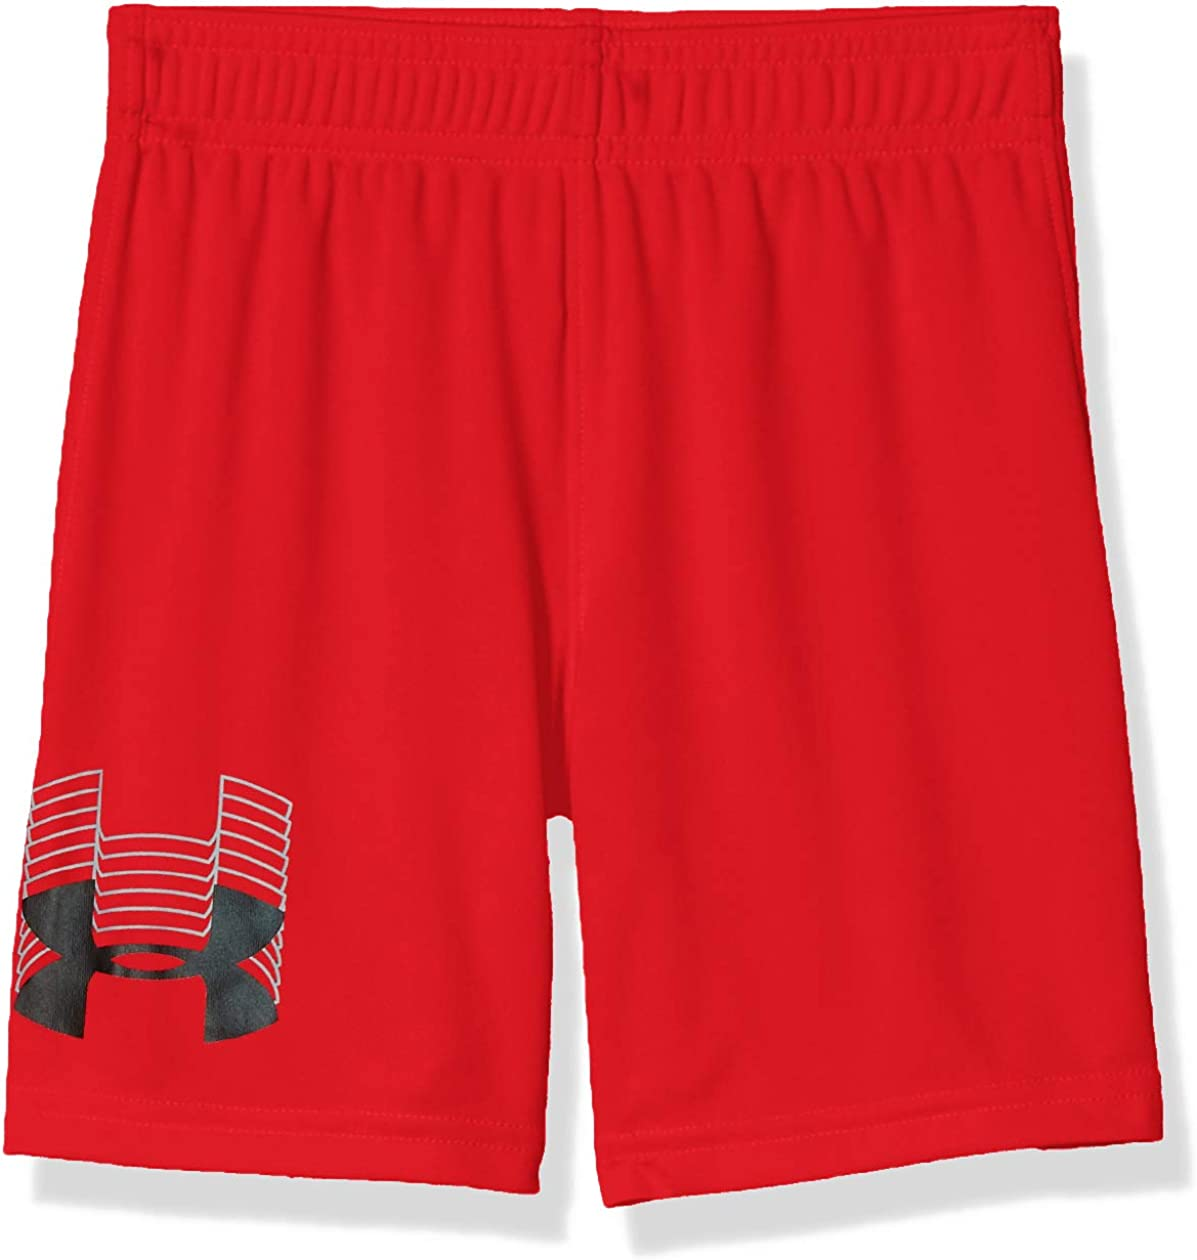 Under Armour Boys' Short Prototype Easy-to-use Credence